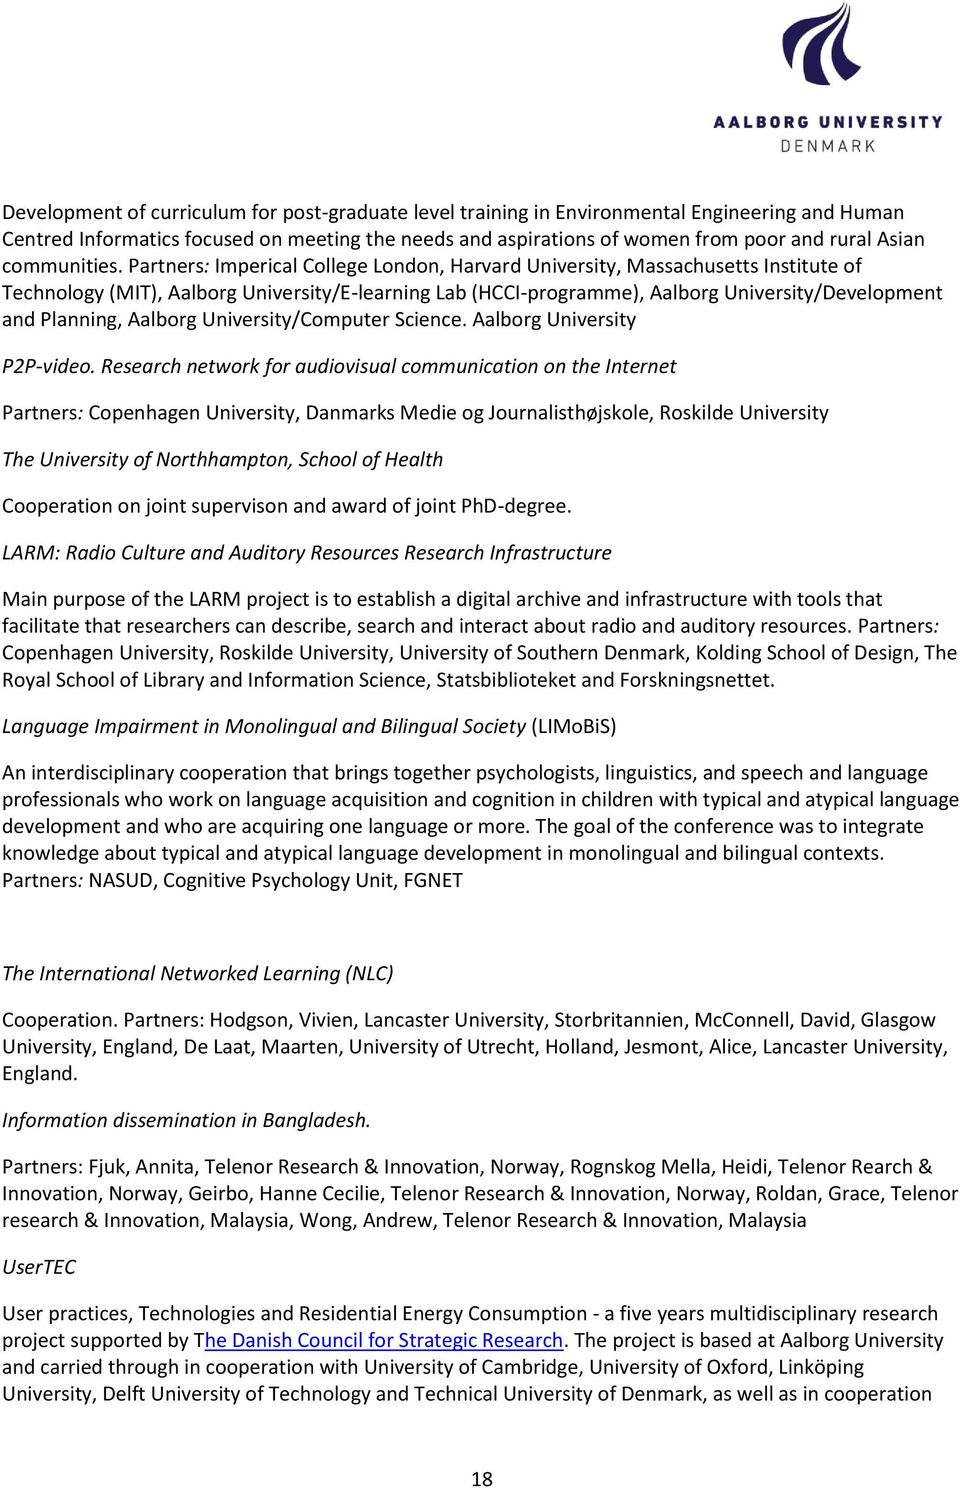 Partners: Imperical College London, Harvard University, Massachusetts Institute of Technology (MIT), Aalborg University/E-learning Lab (HCCI-programme), Aalborg University/Development and Planning,